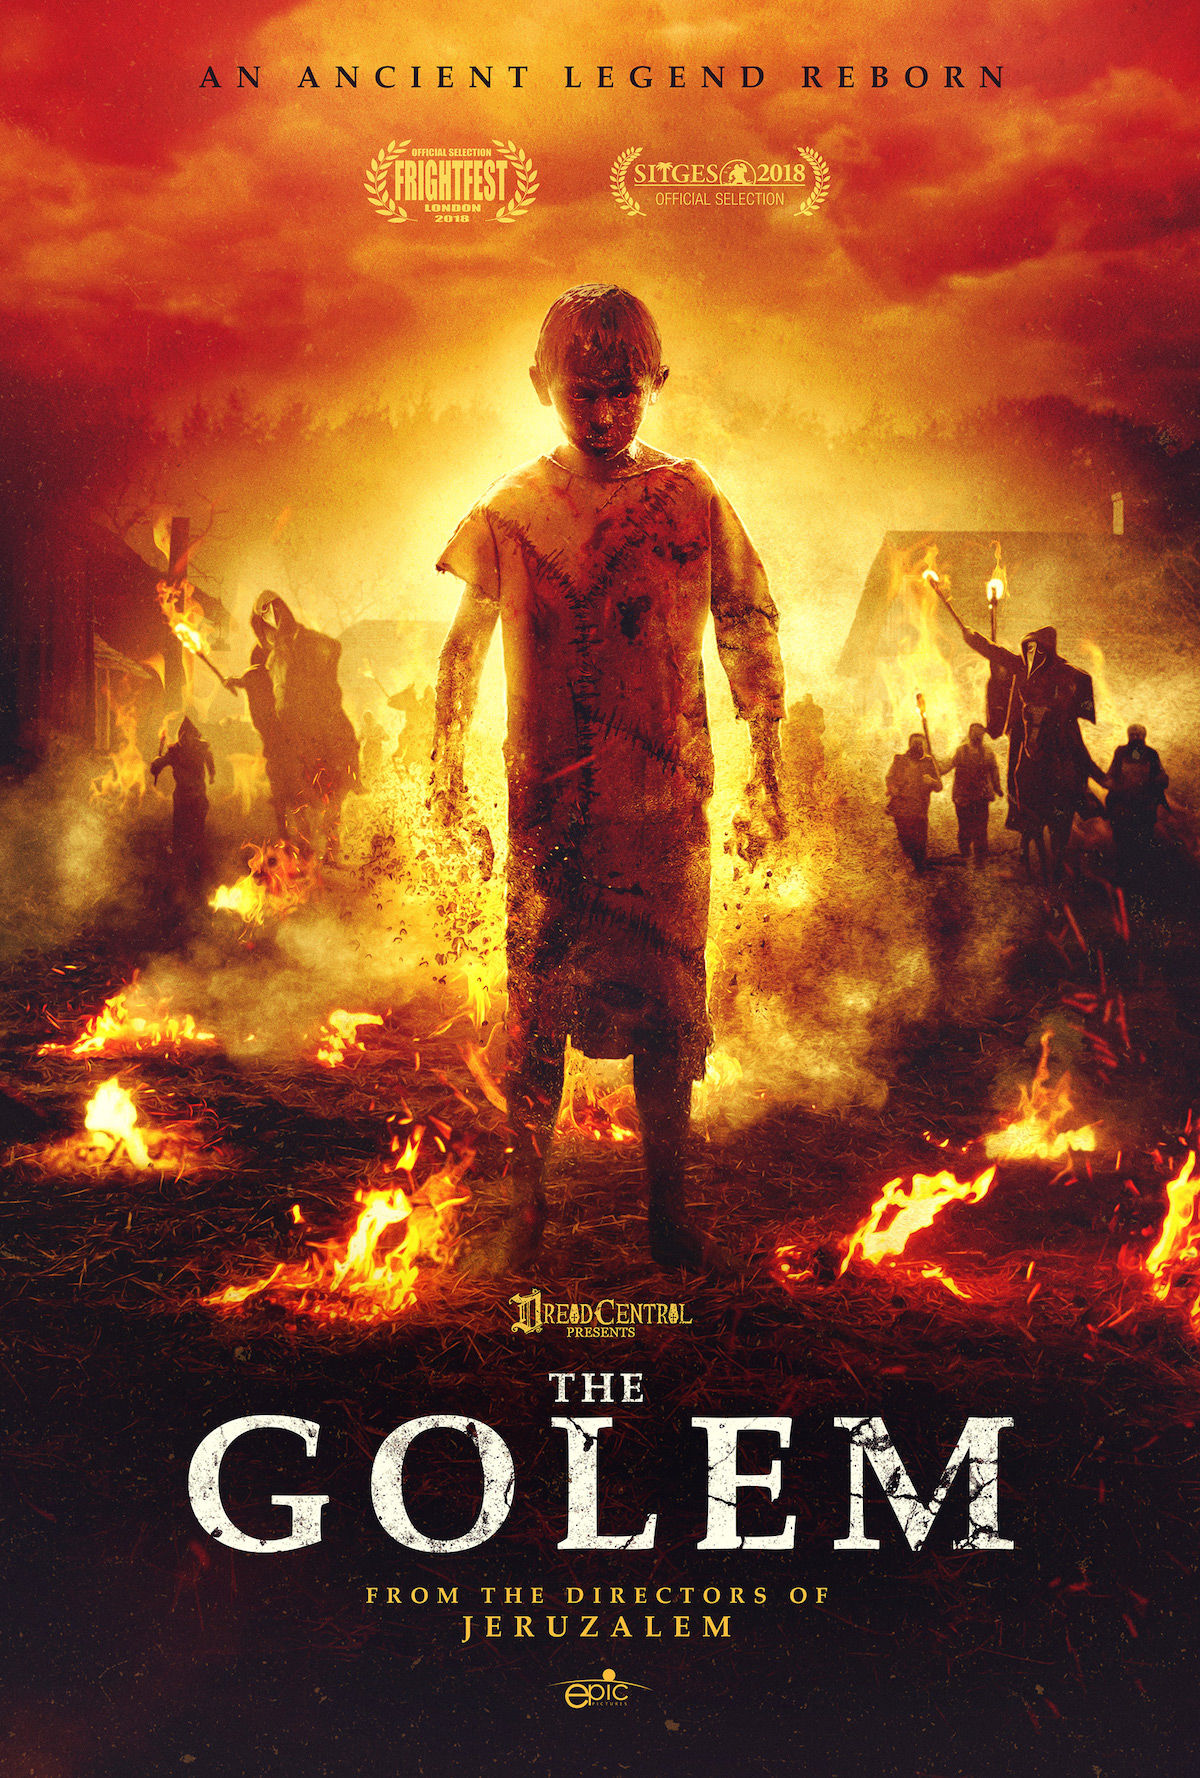 'The Golem' movie poster